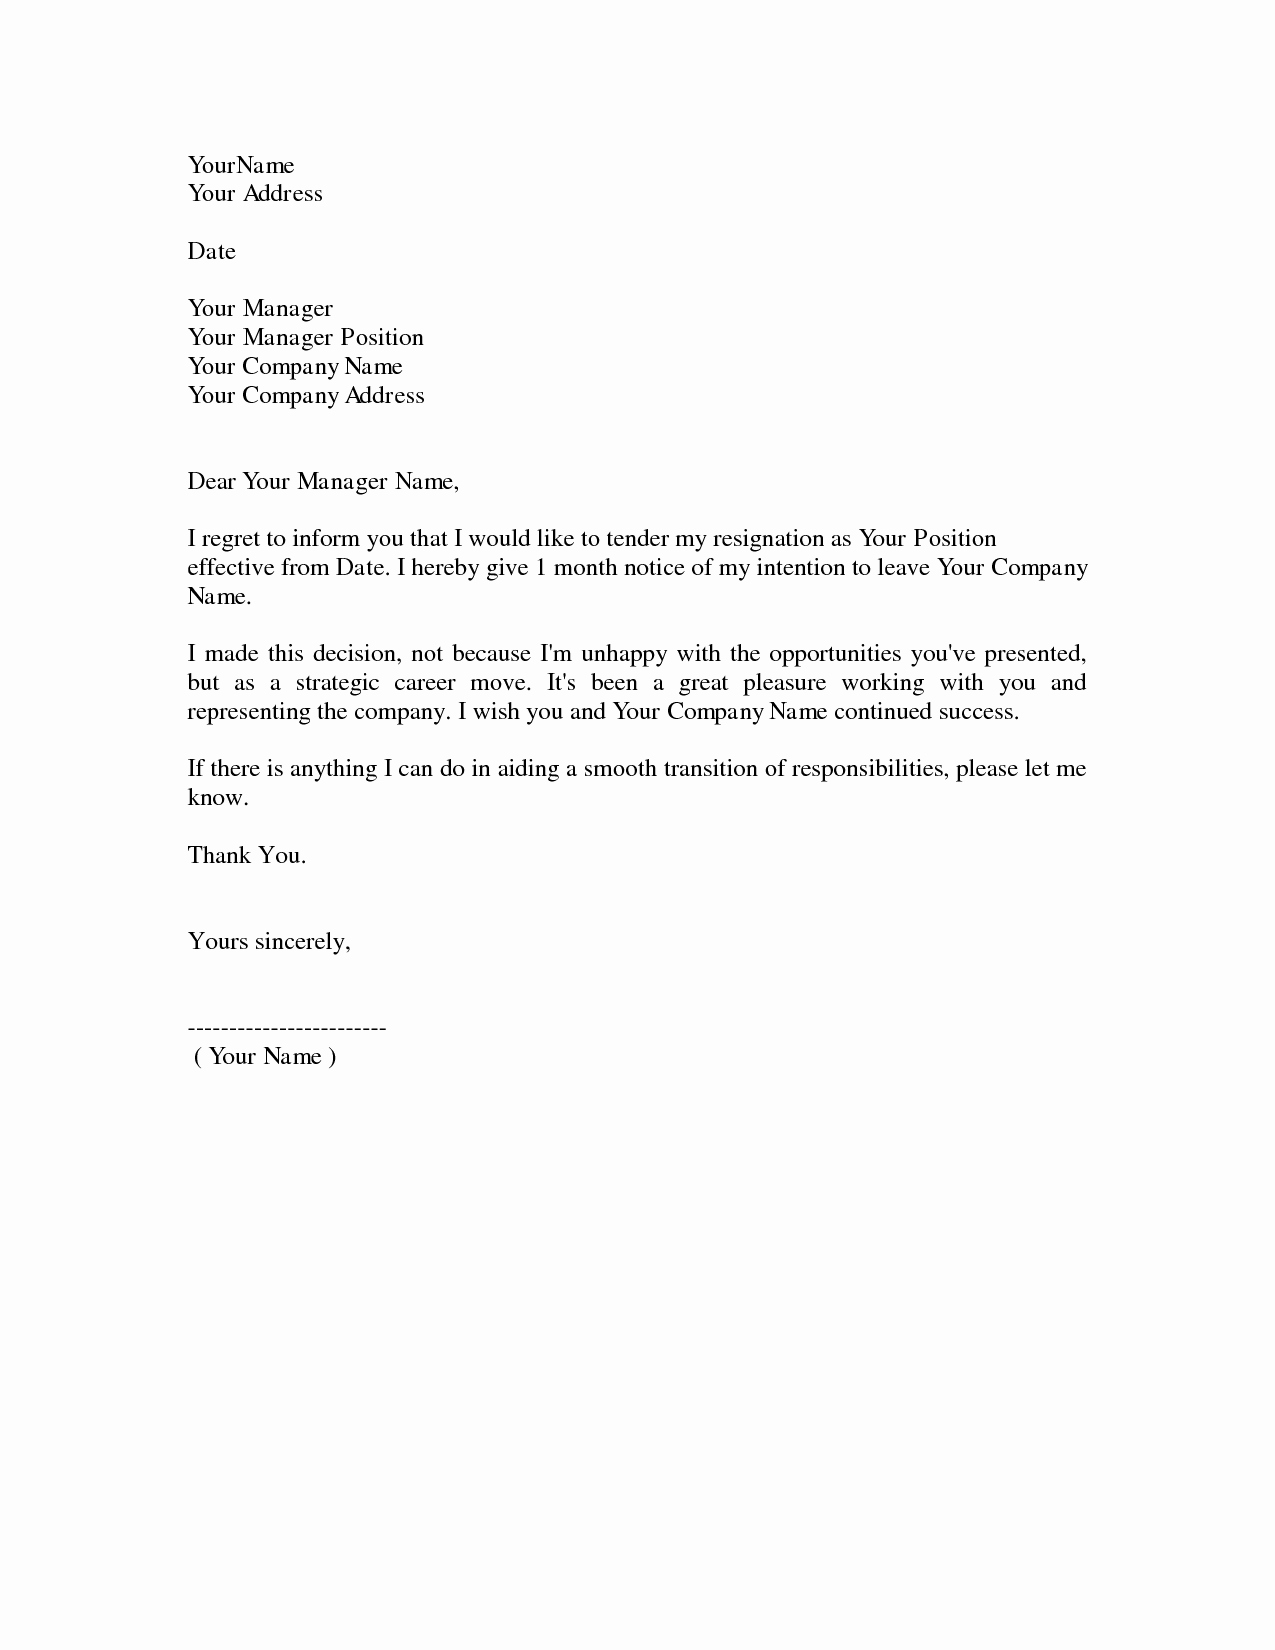 Resignation Letter for Work Awesome Resignation Letters Download Pdf Doc format